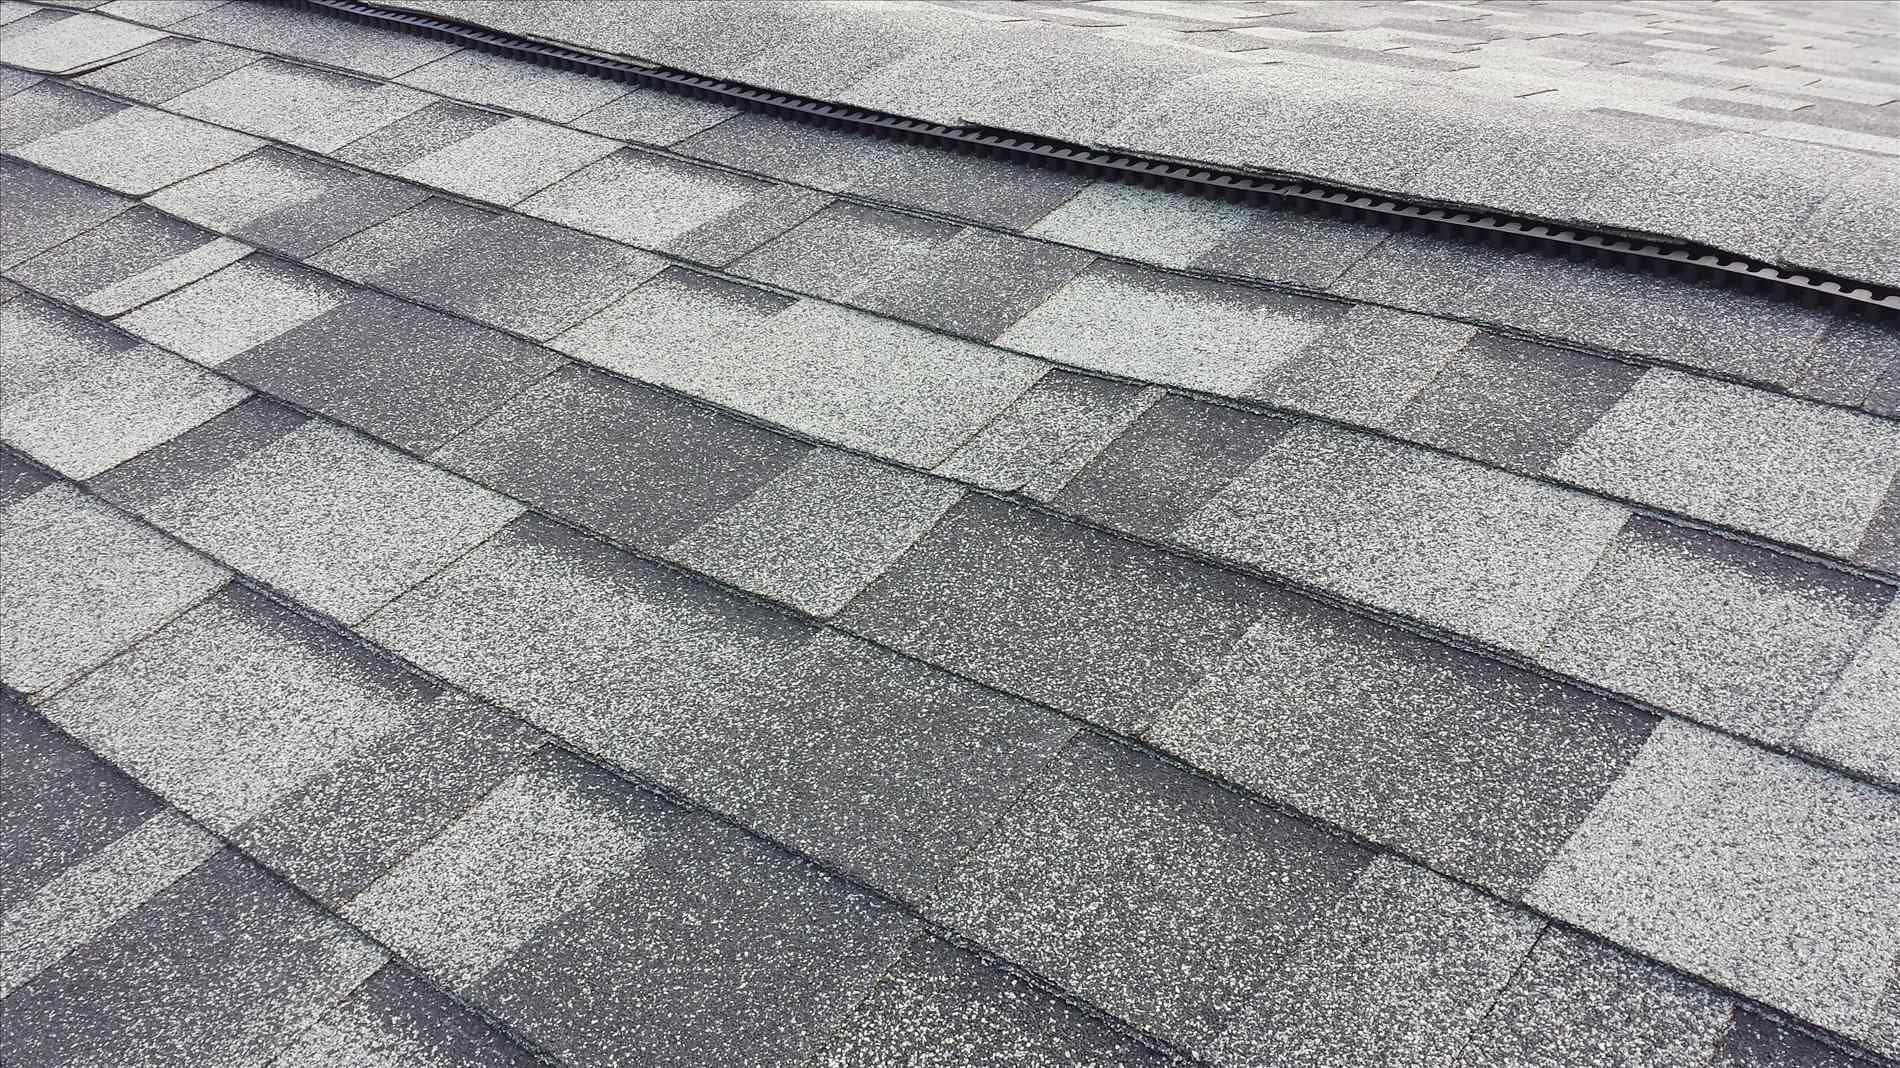 Best Quality Roof Shingles Roofing Companies Roof Design Roofing Services